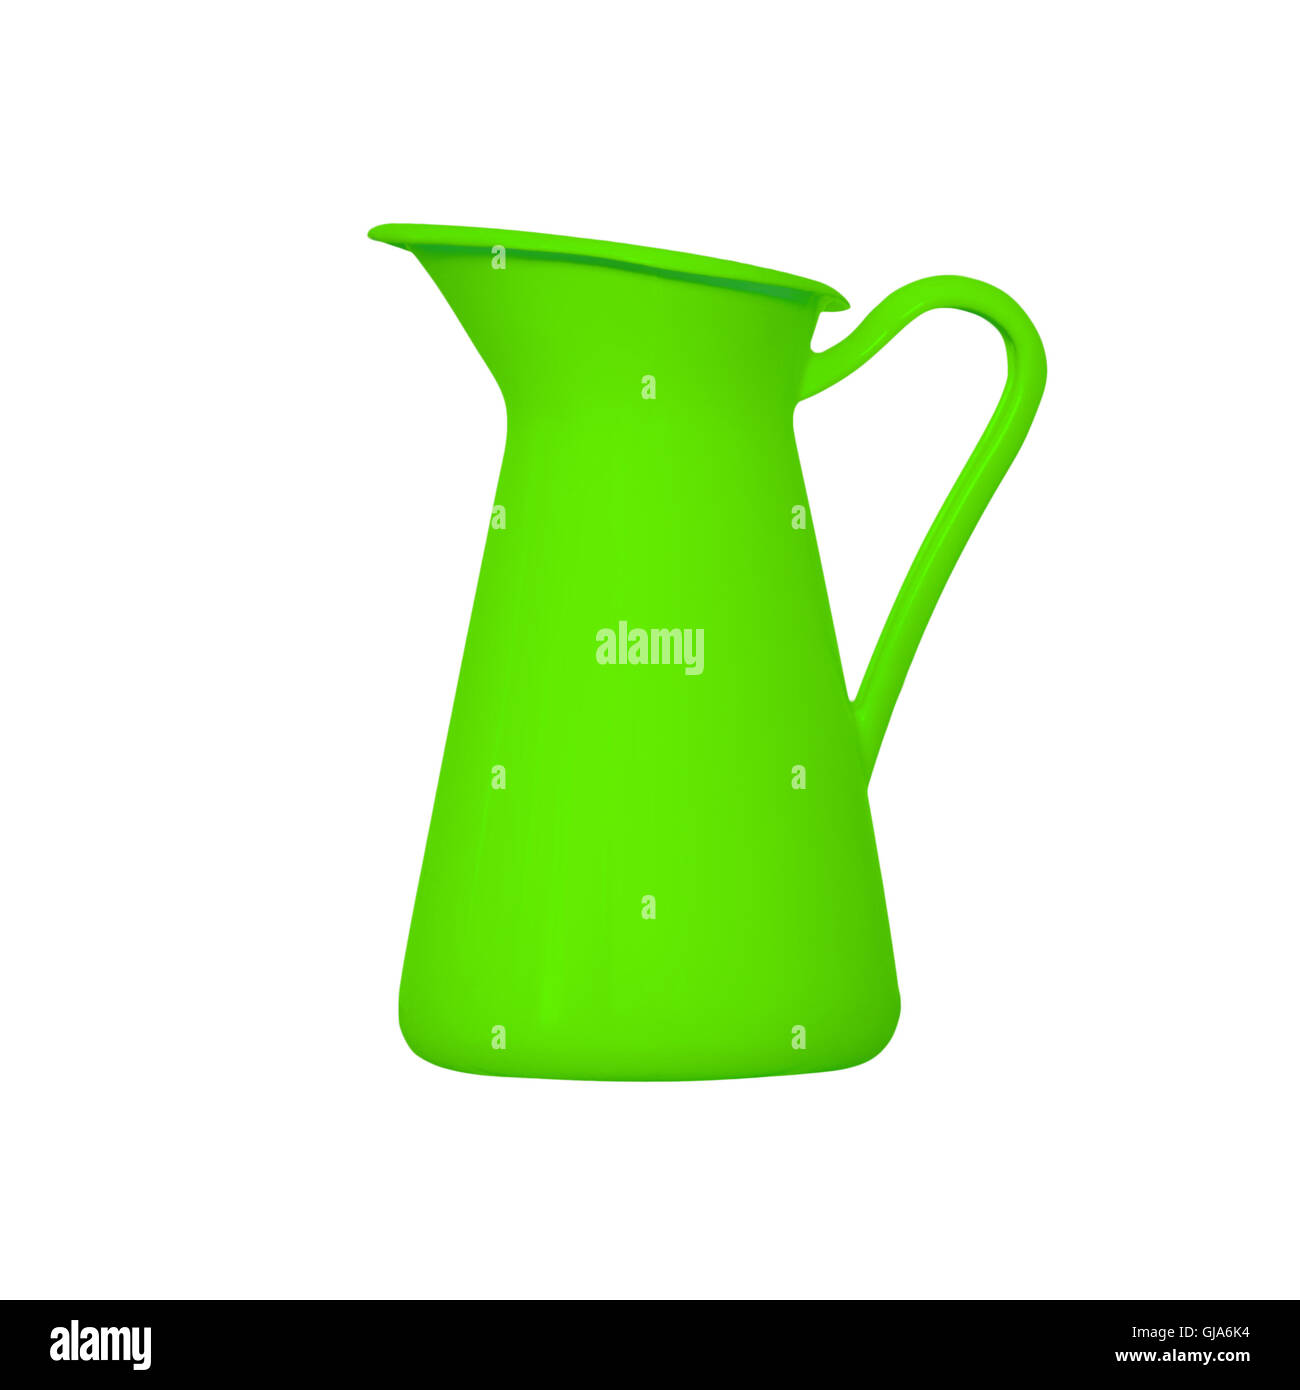 Storage for liquids - Green jug ewer on a white background. Stock Photo